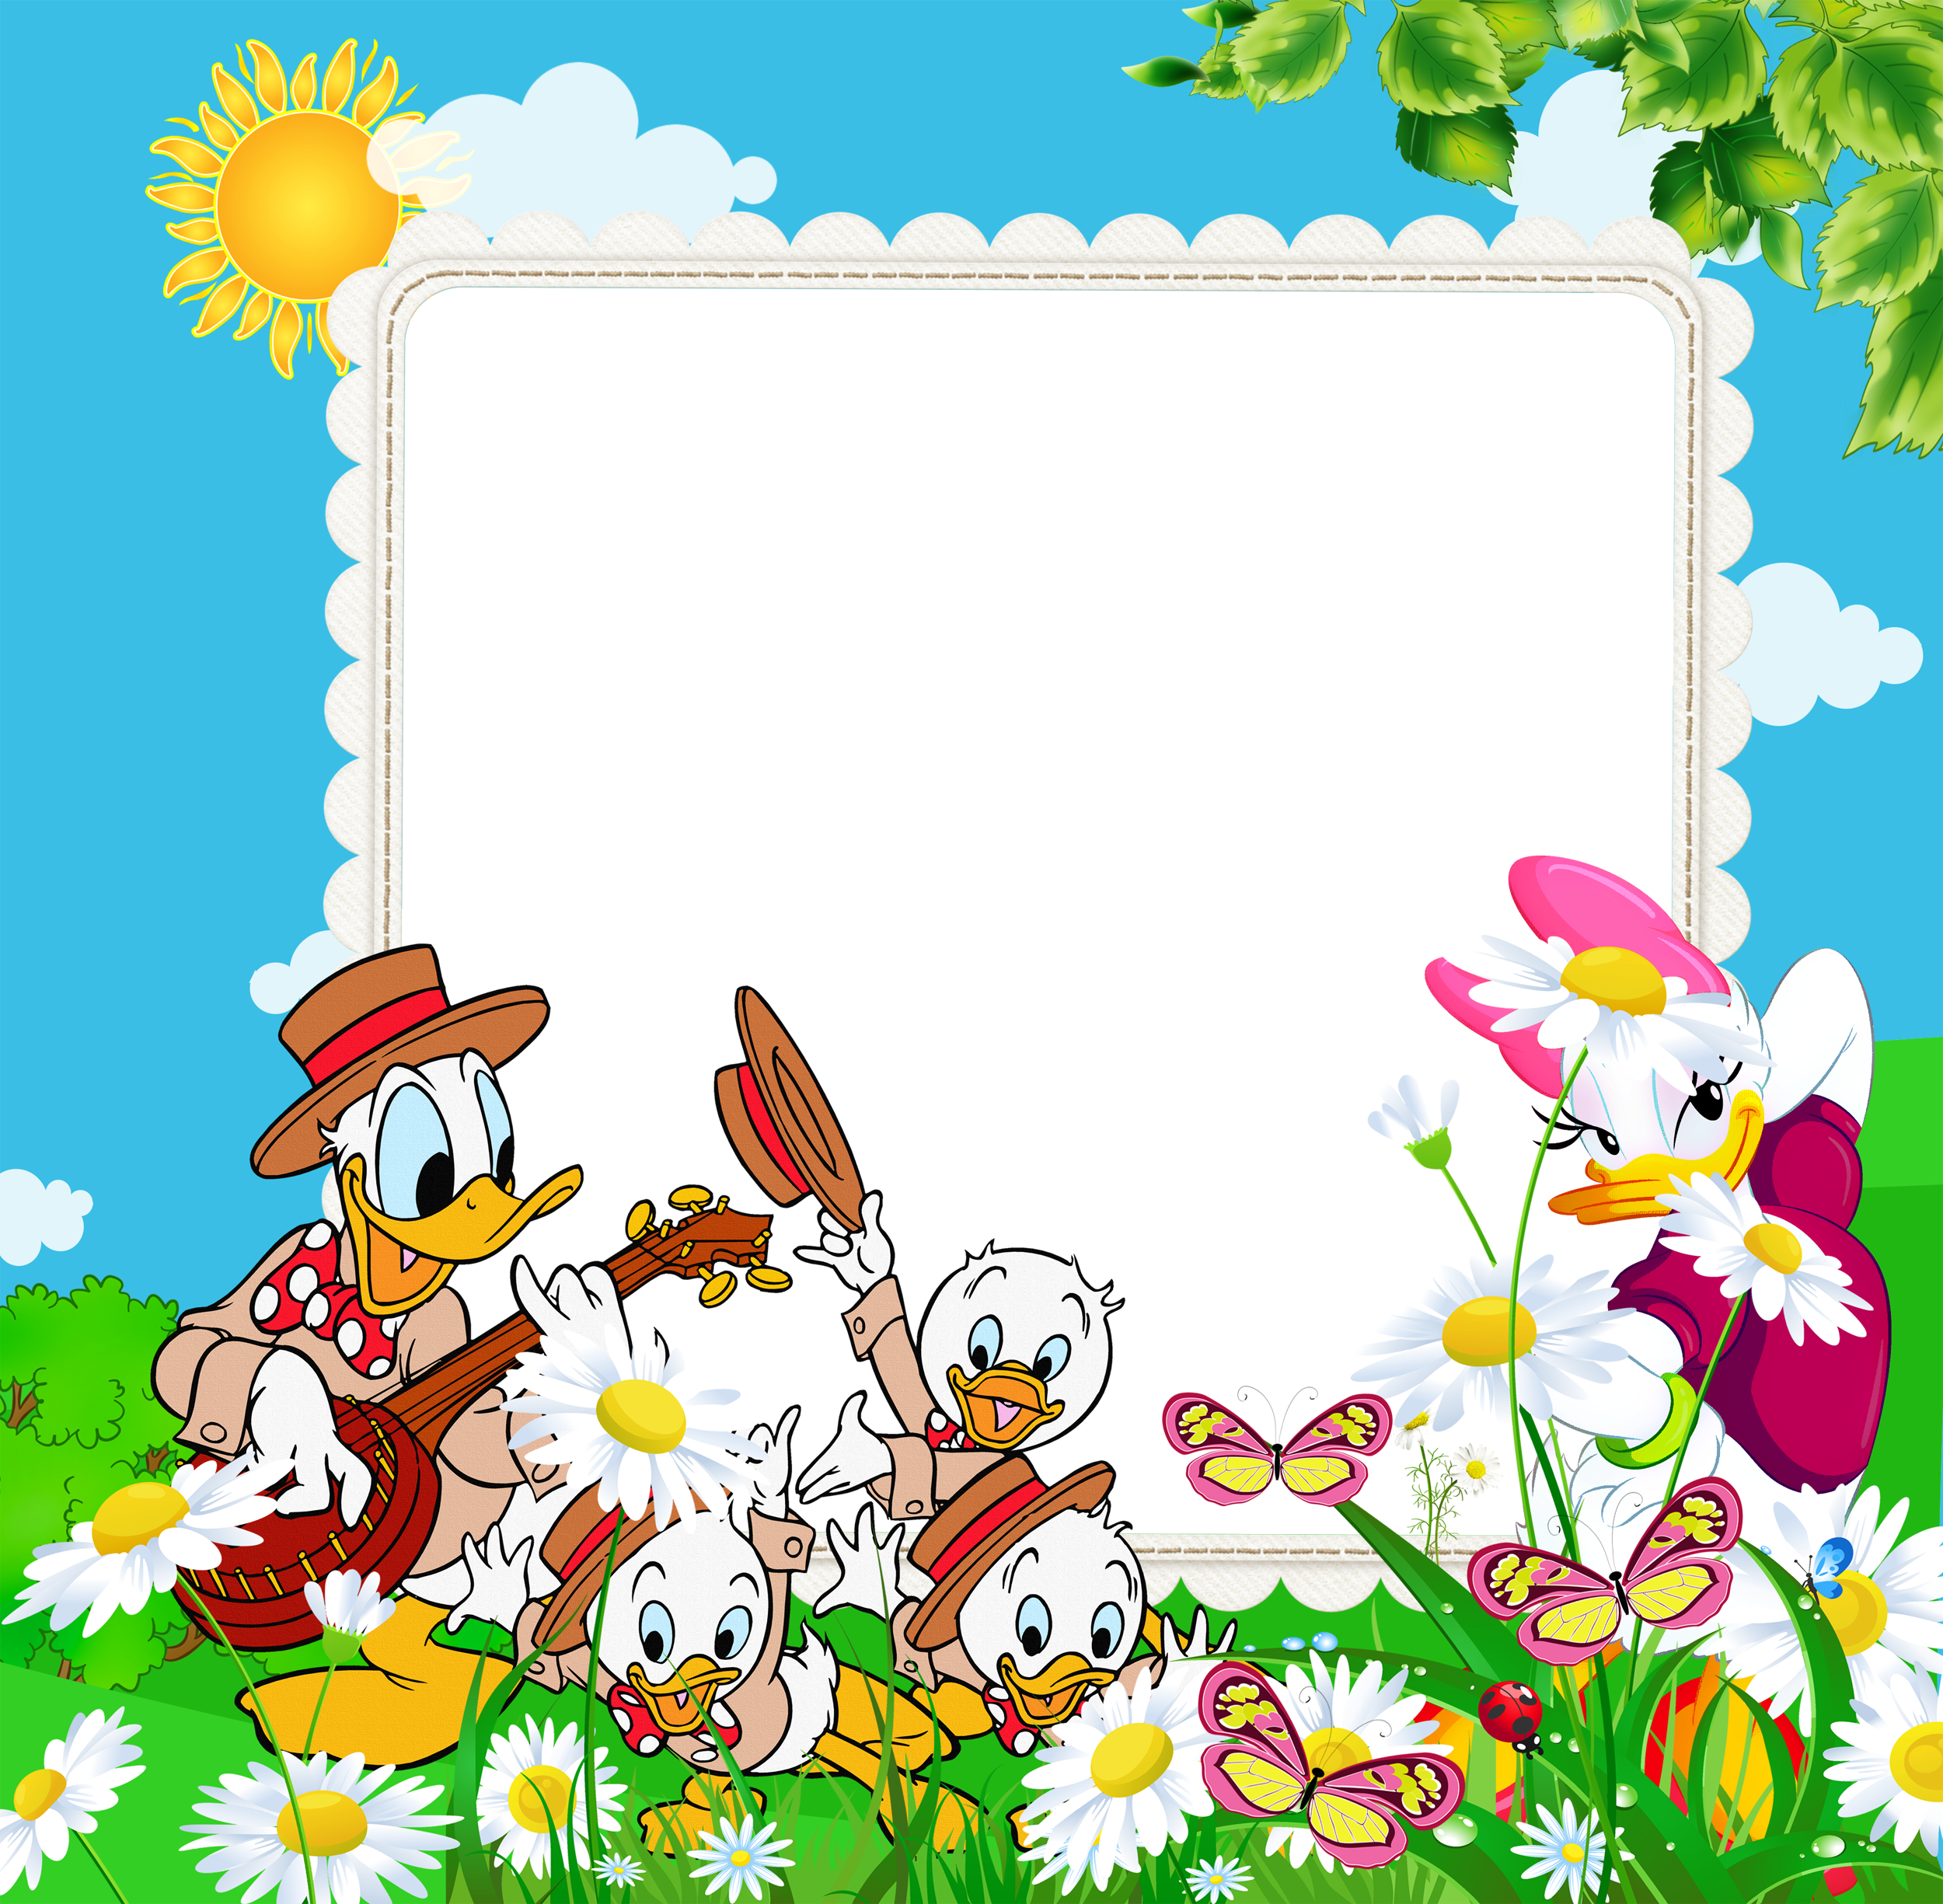 Frames for kids png. Transparent frame with ducks